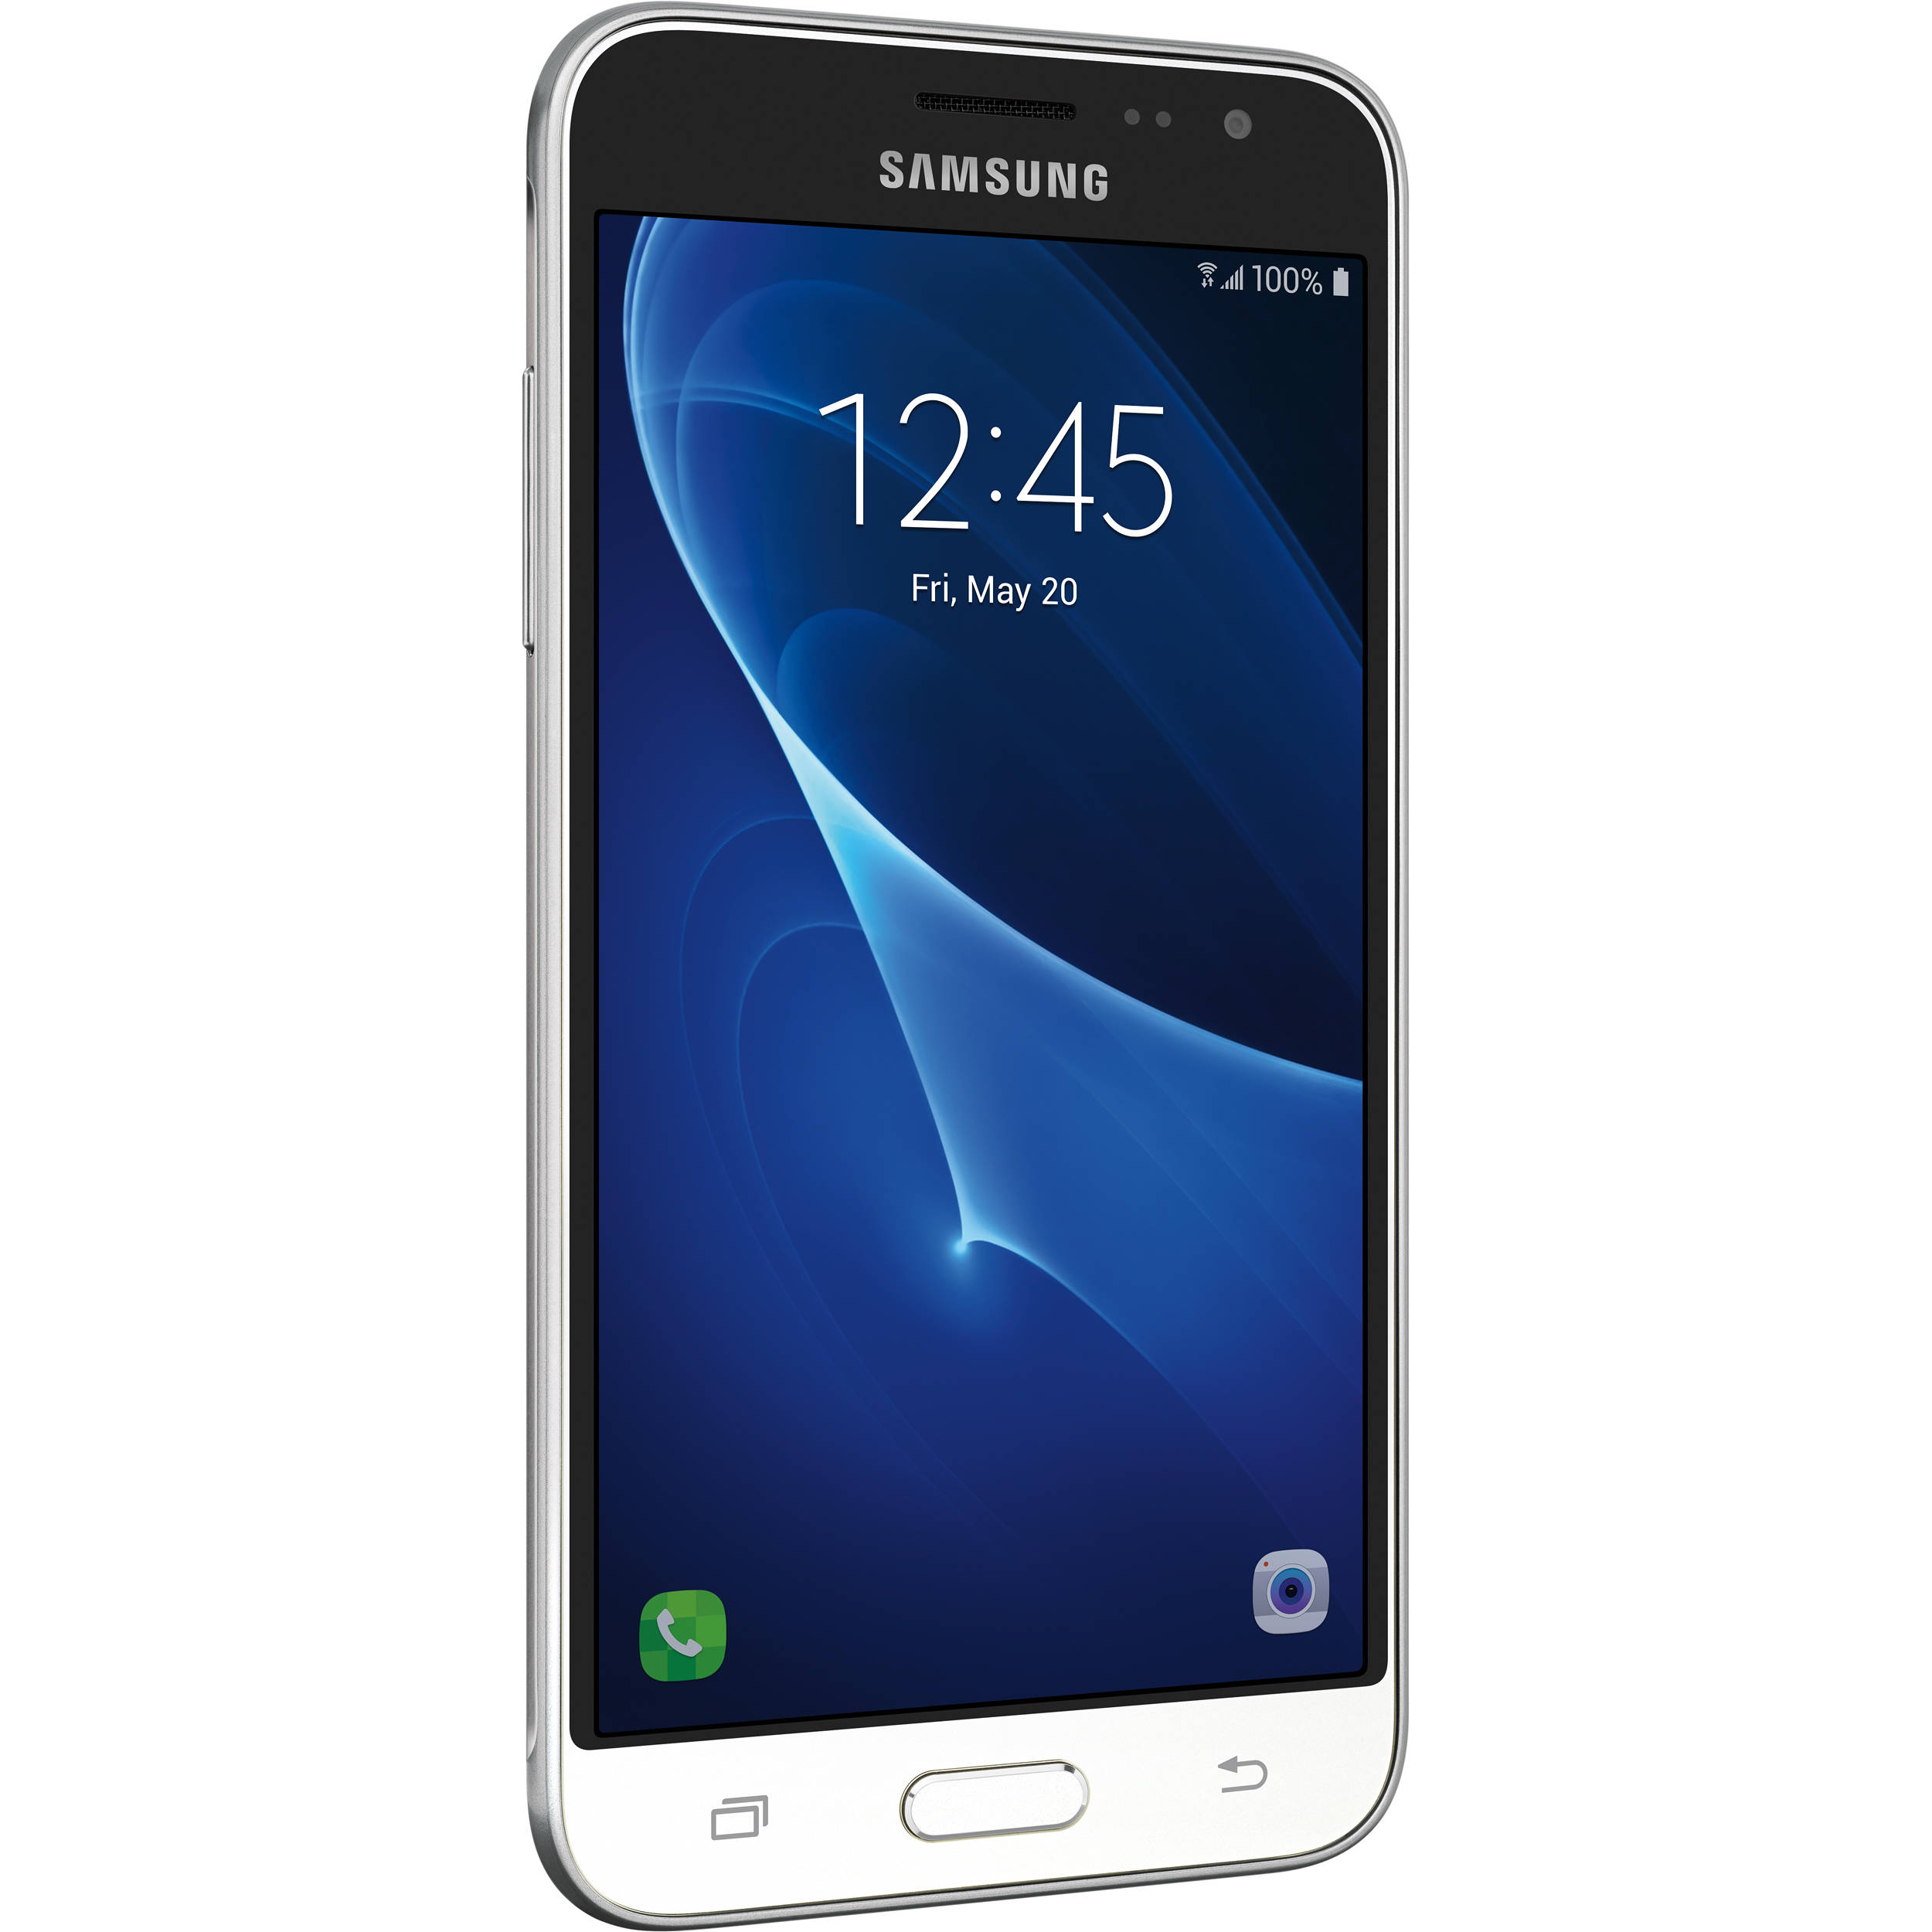 Samsung Galaxy J3 J320 16GB Smartphone SM-J320AZWAXAR B&H Photo